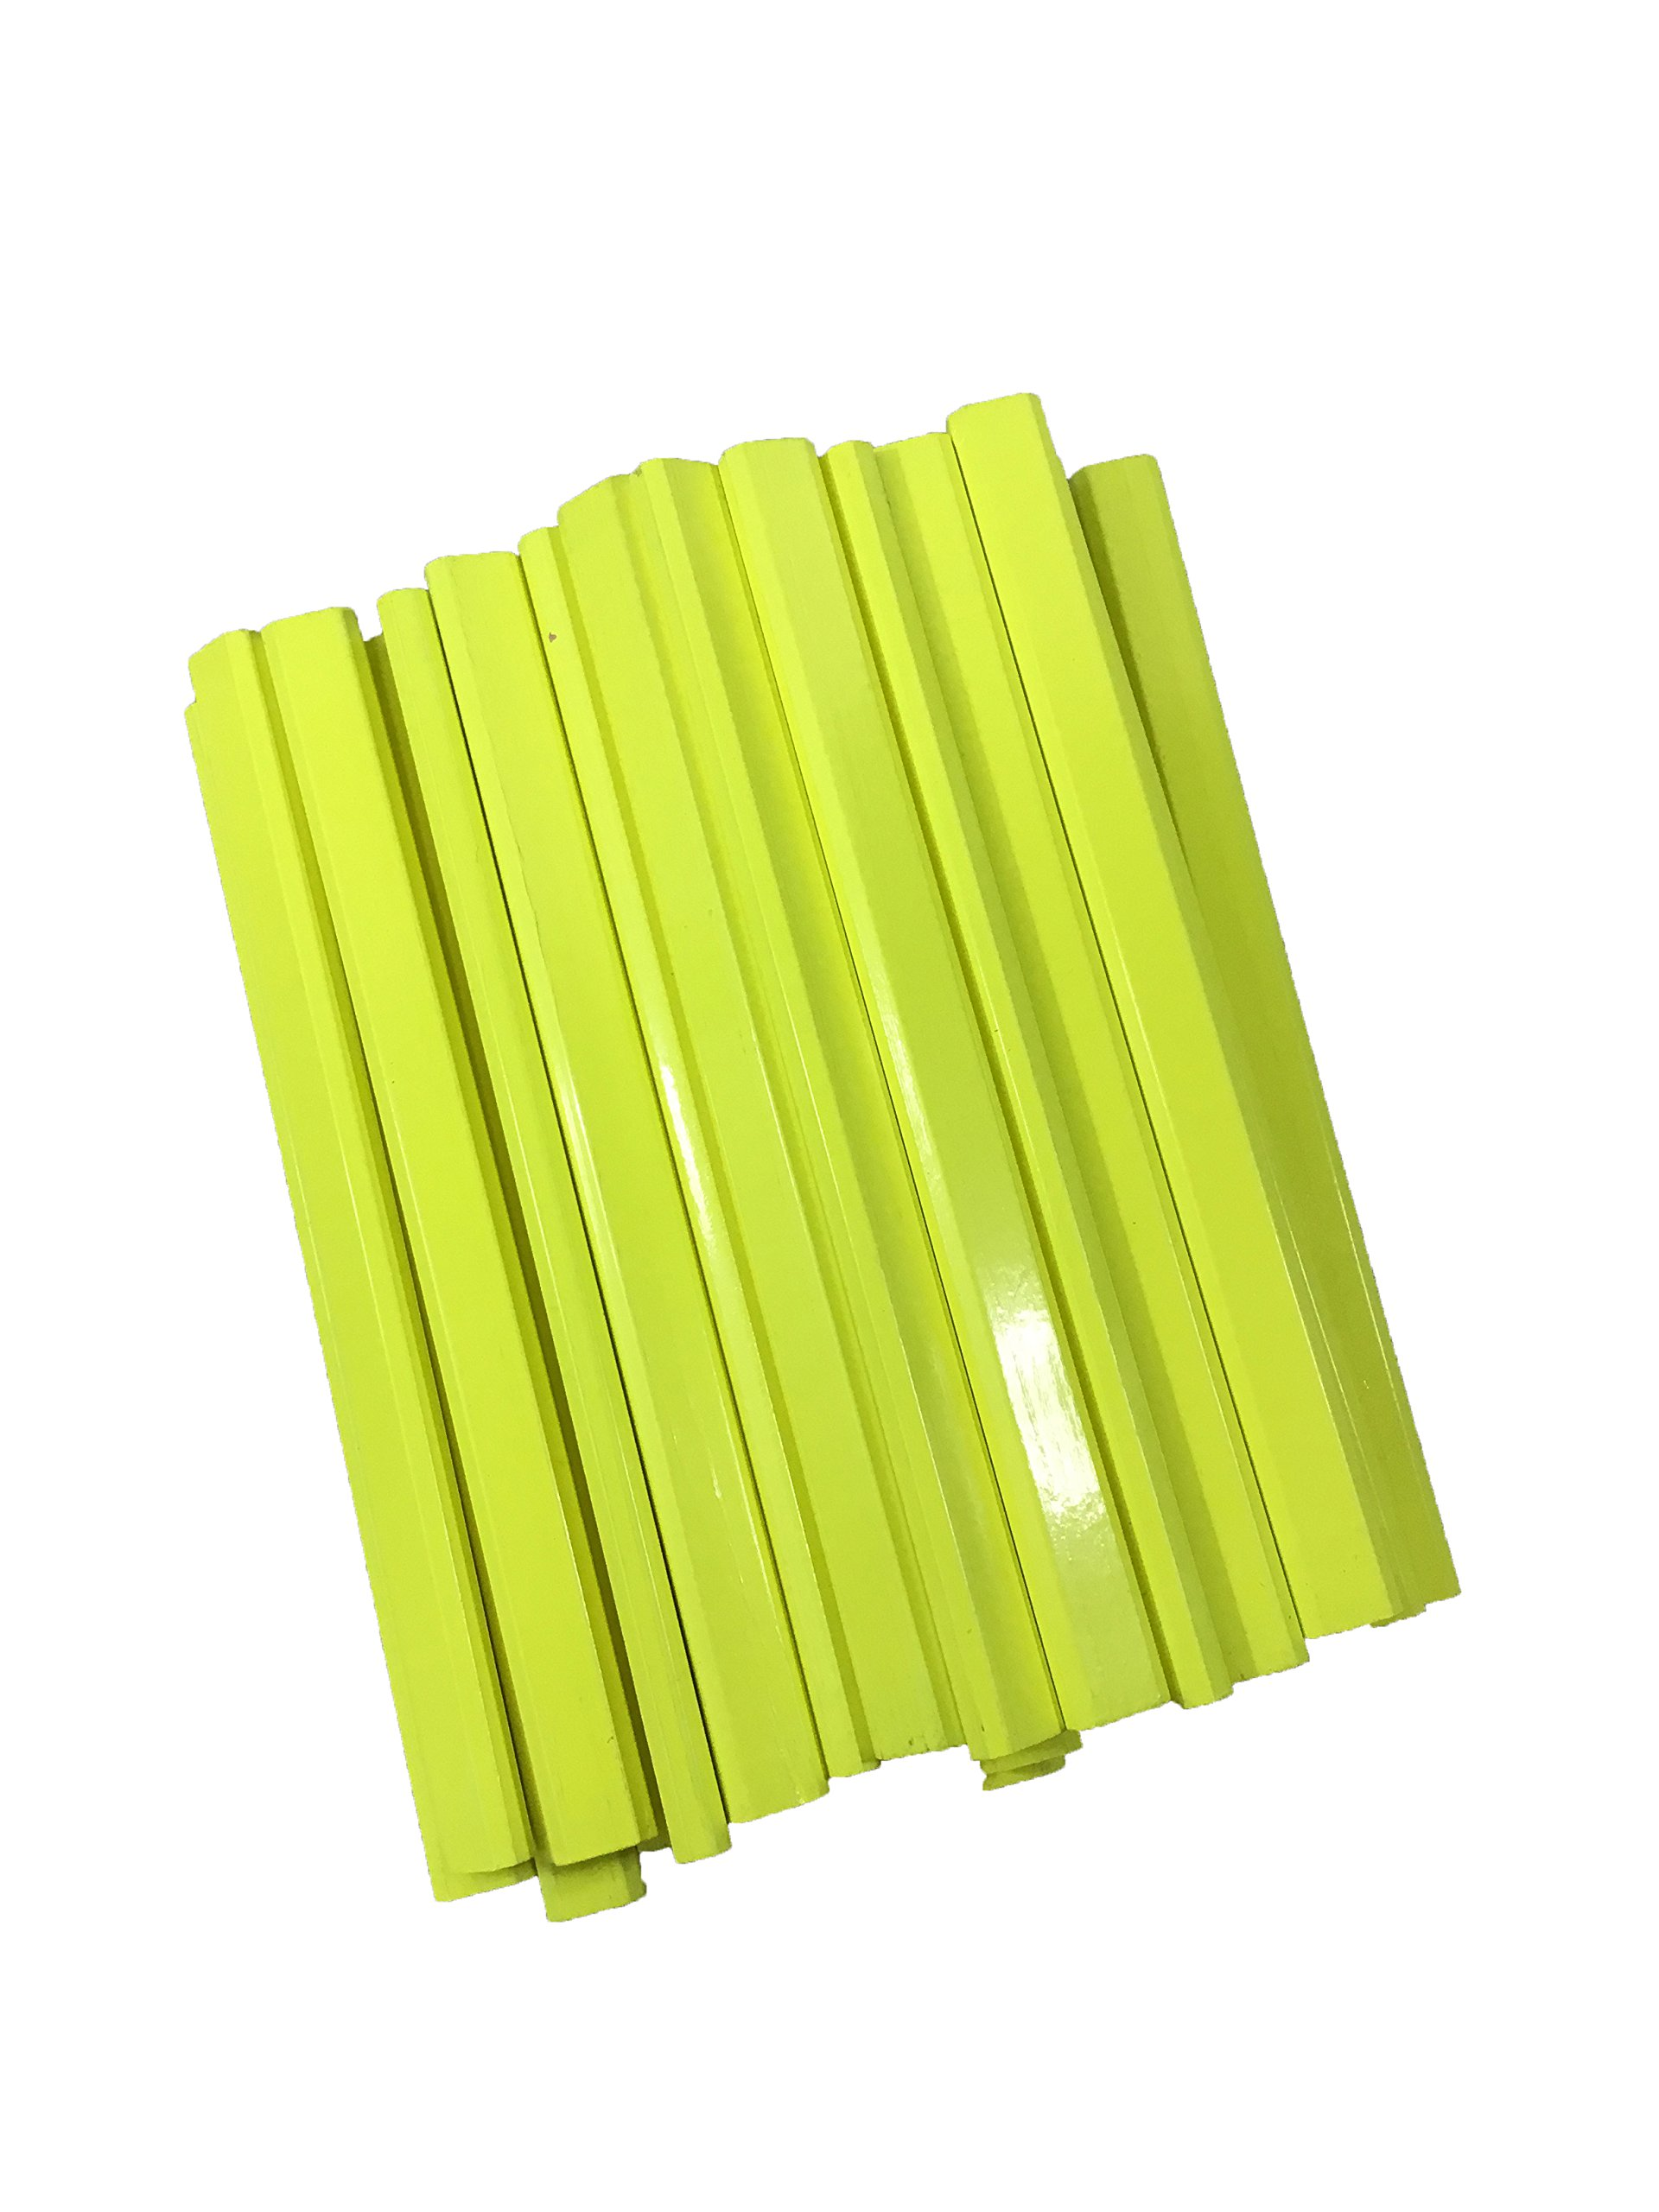 Flat Wooden Neon Yellow Carpenter Pencils - 72 Count Bulk Box Made In The USA by Rockvale Retail Carpenter Pencils (Image #3)